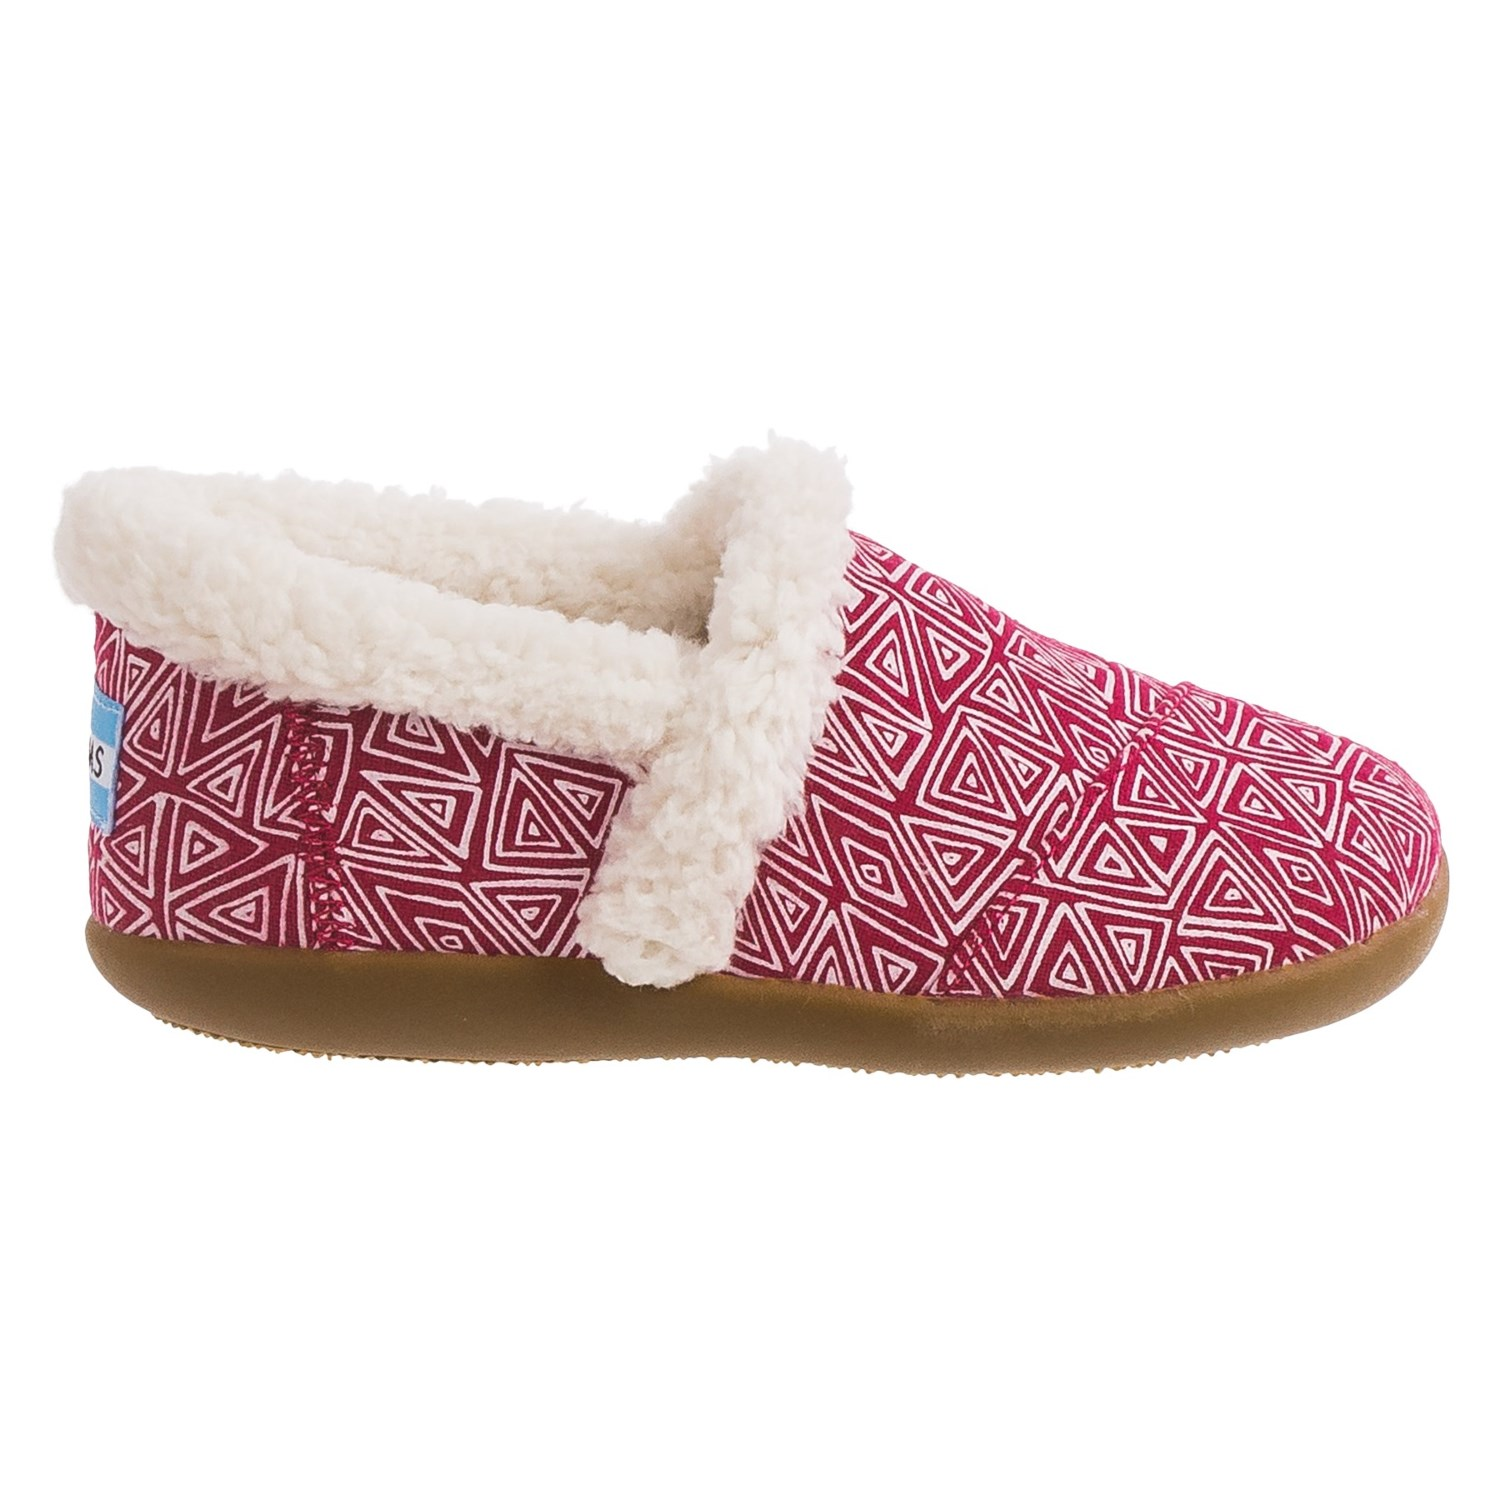 Kids Slippers If your favorite pair of tiny feet need slippers to keep warm and comfy this season, shop our great collection of kids' slippers for girls, boys and even babies. With all kinds of slippers including bootie and clog slippers, moccasins, indoor and outdoor slippers, sheepskin slippers and more, the only challenge will be deciding.